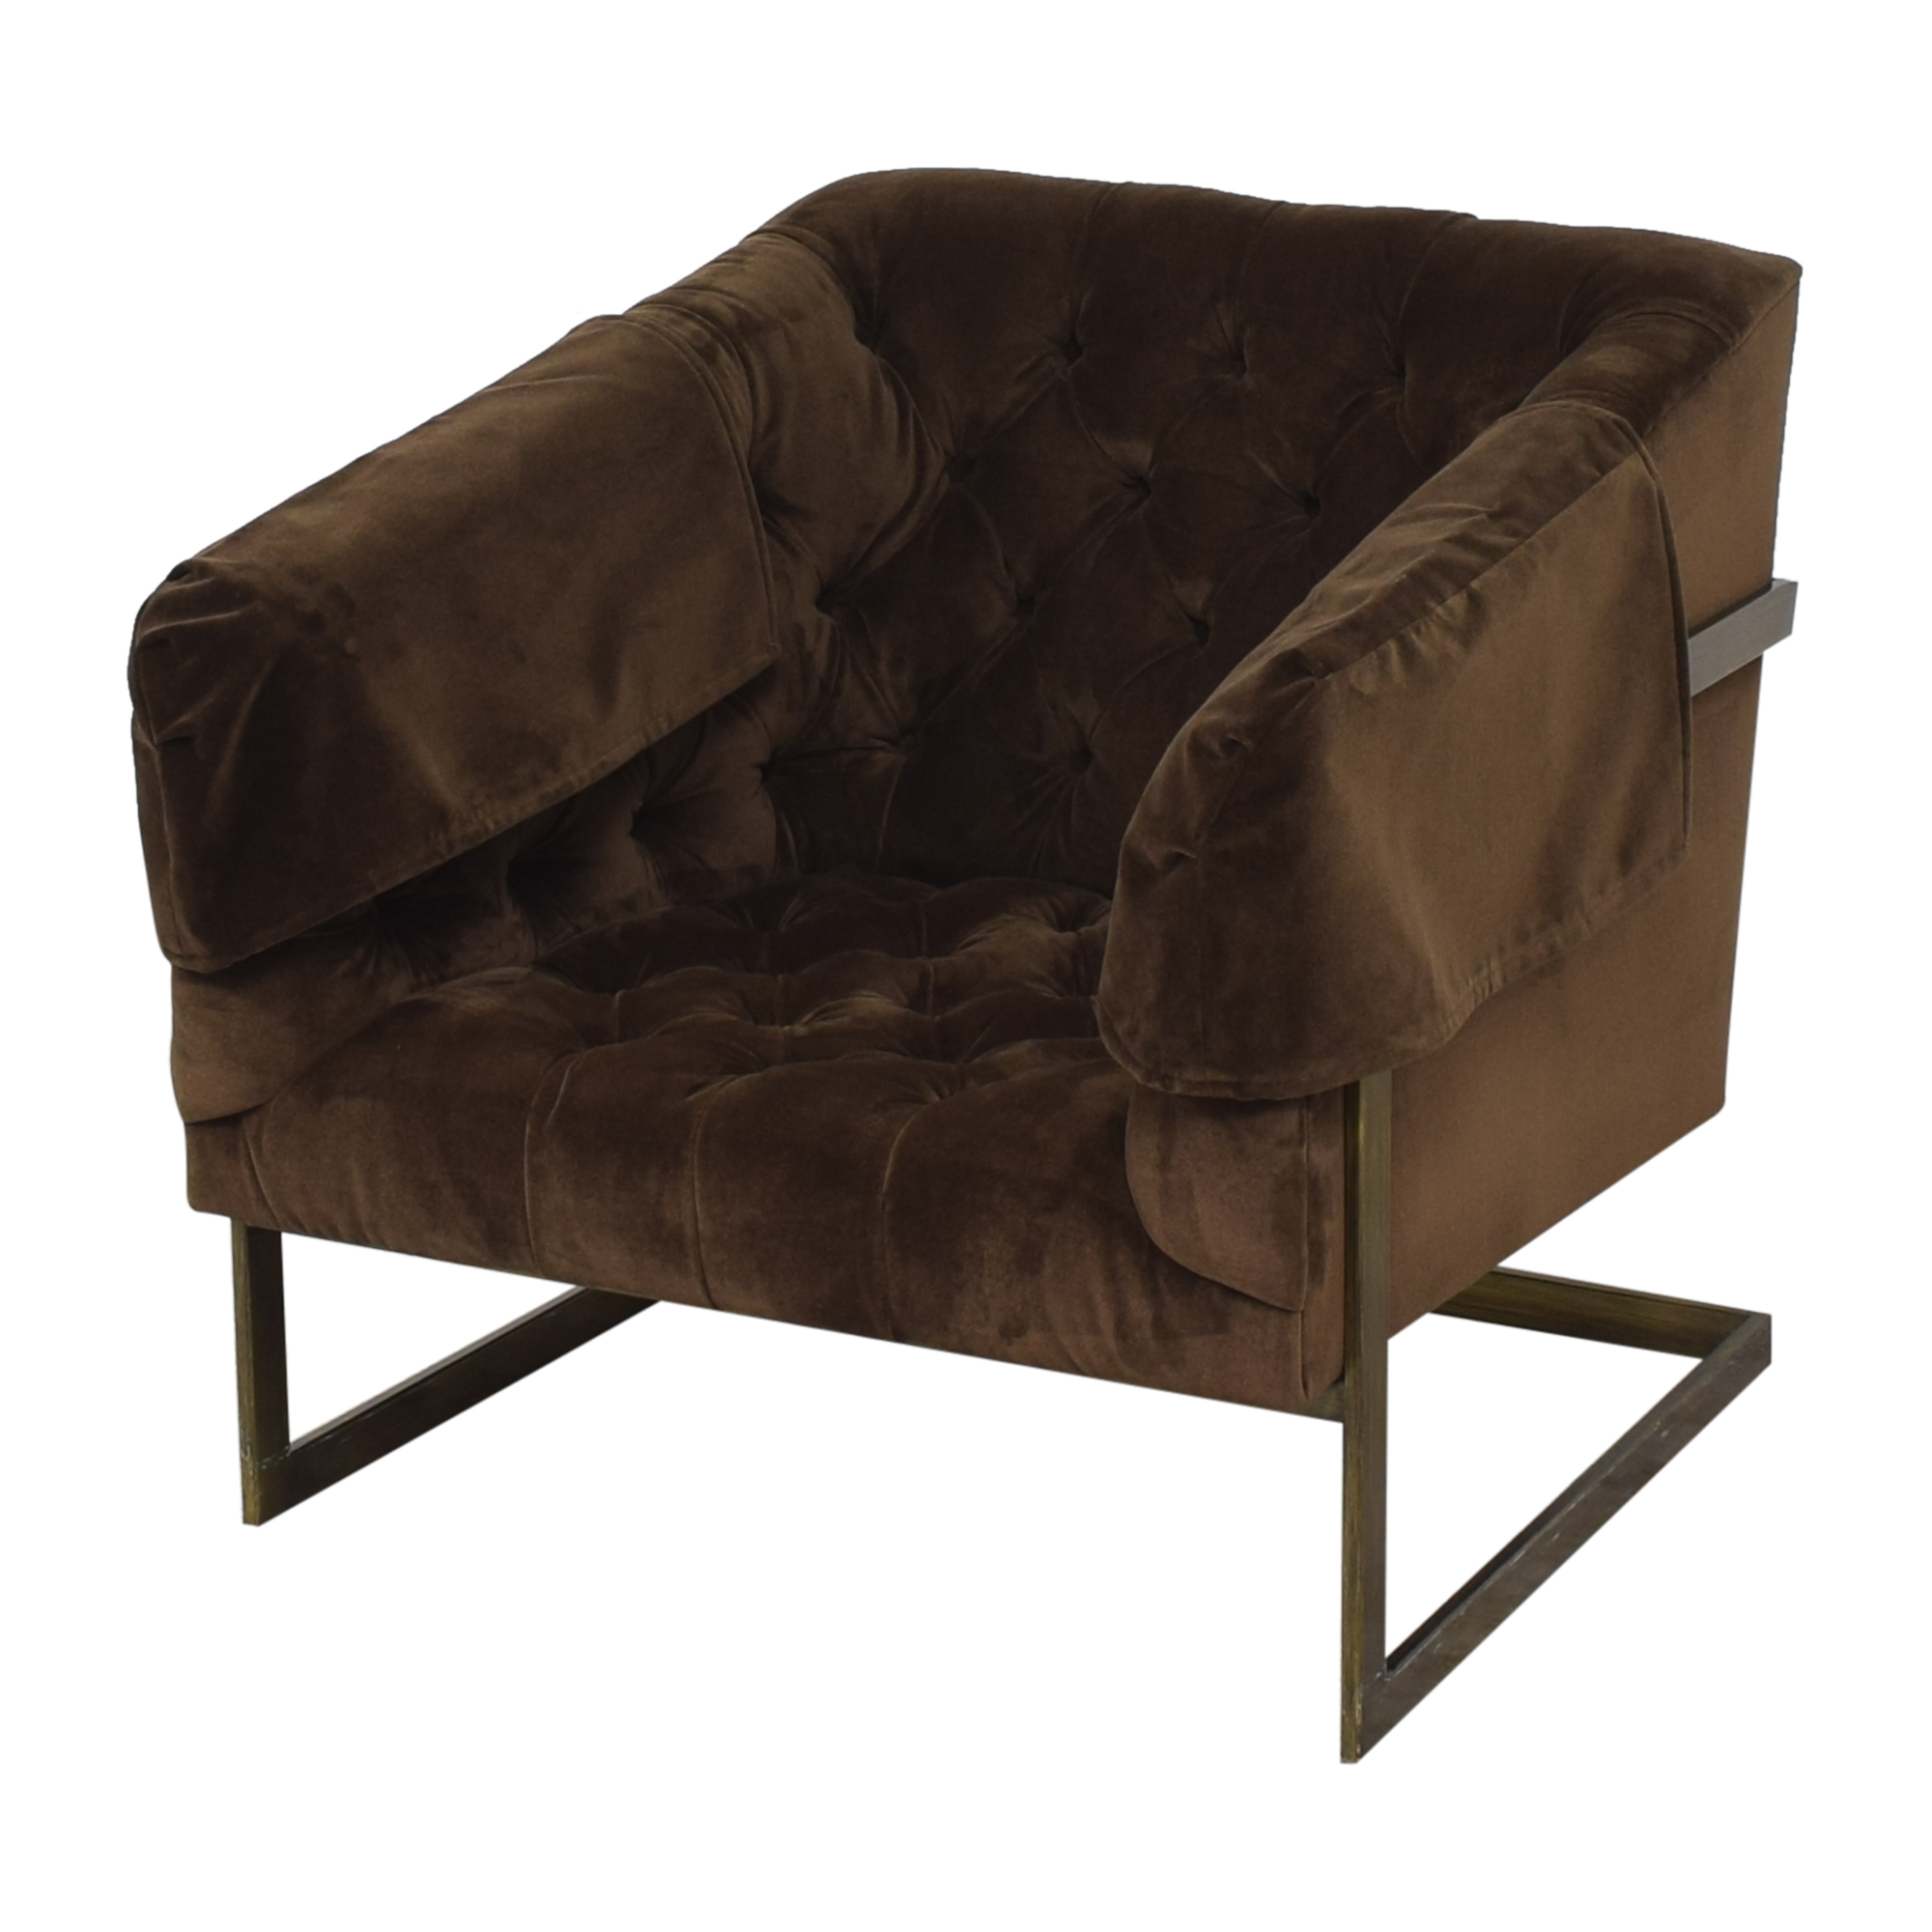 Safavieh Tufted Accent Chair / Accent Chairs